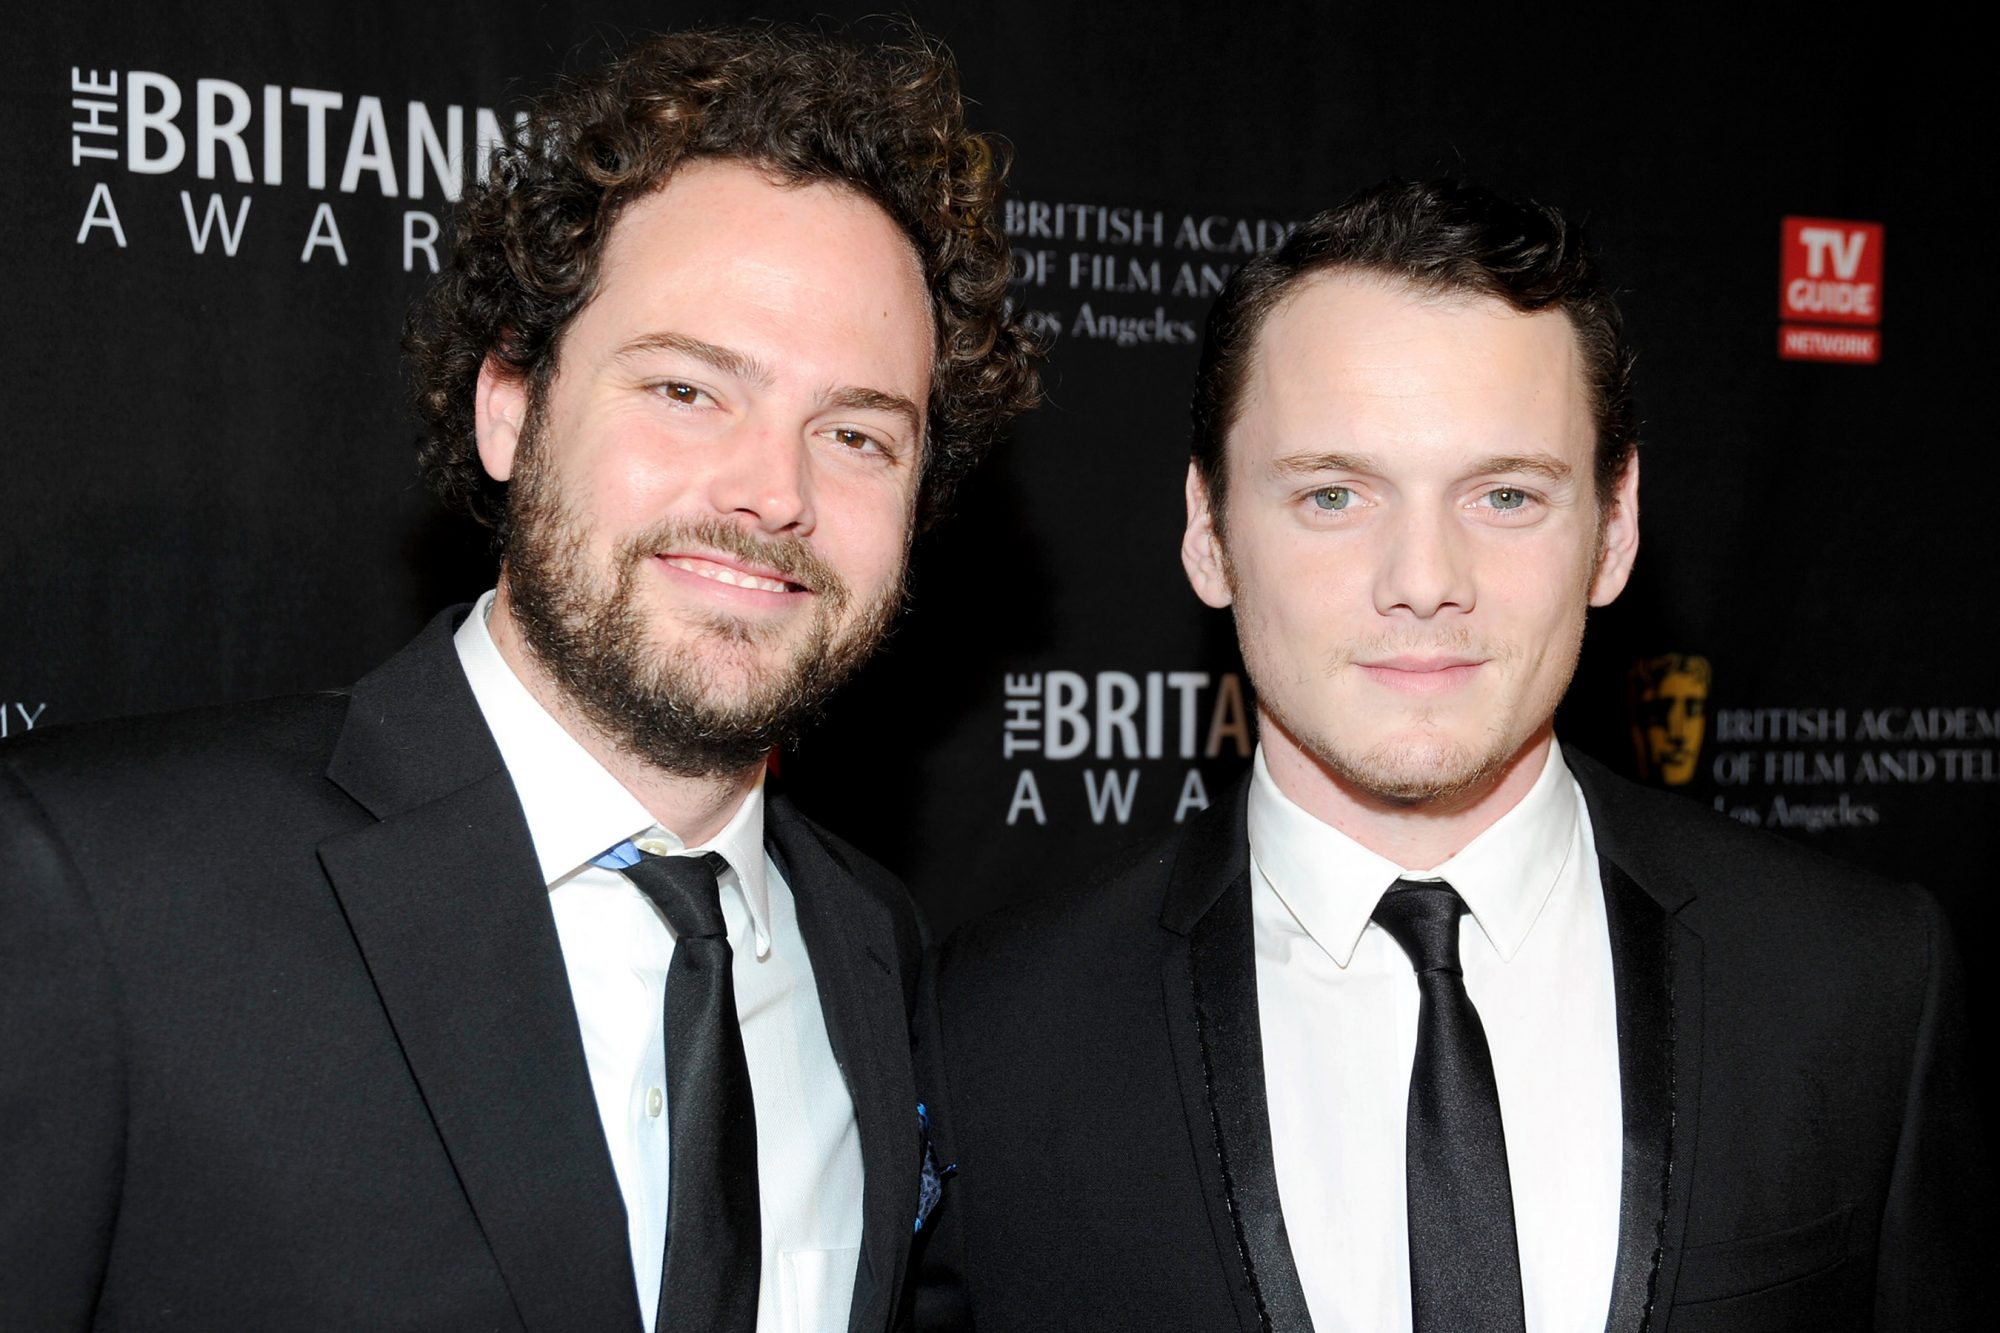 BAFTA Los Angeles 2011 Britannia Awards - Red Carpet